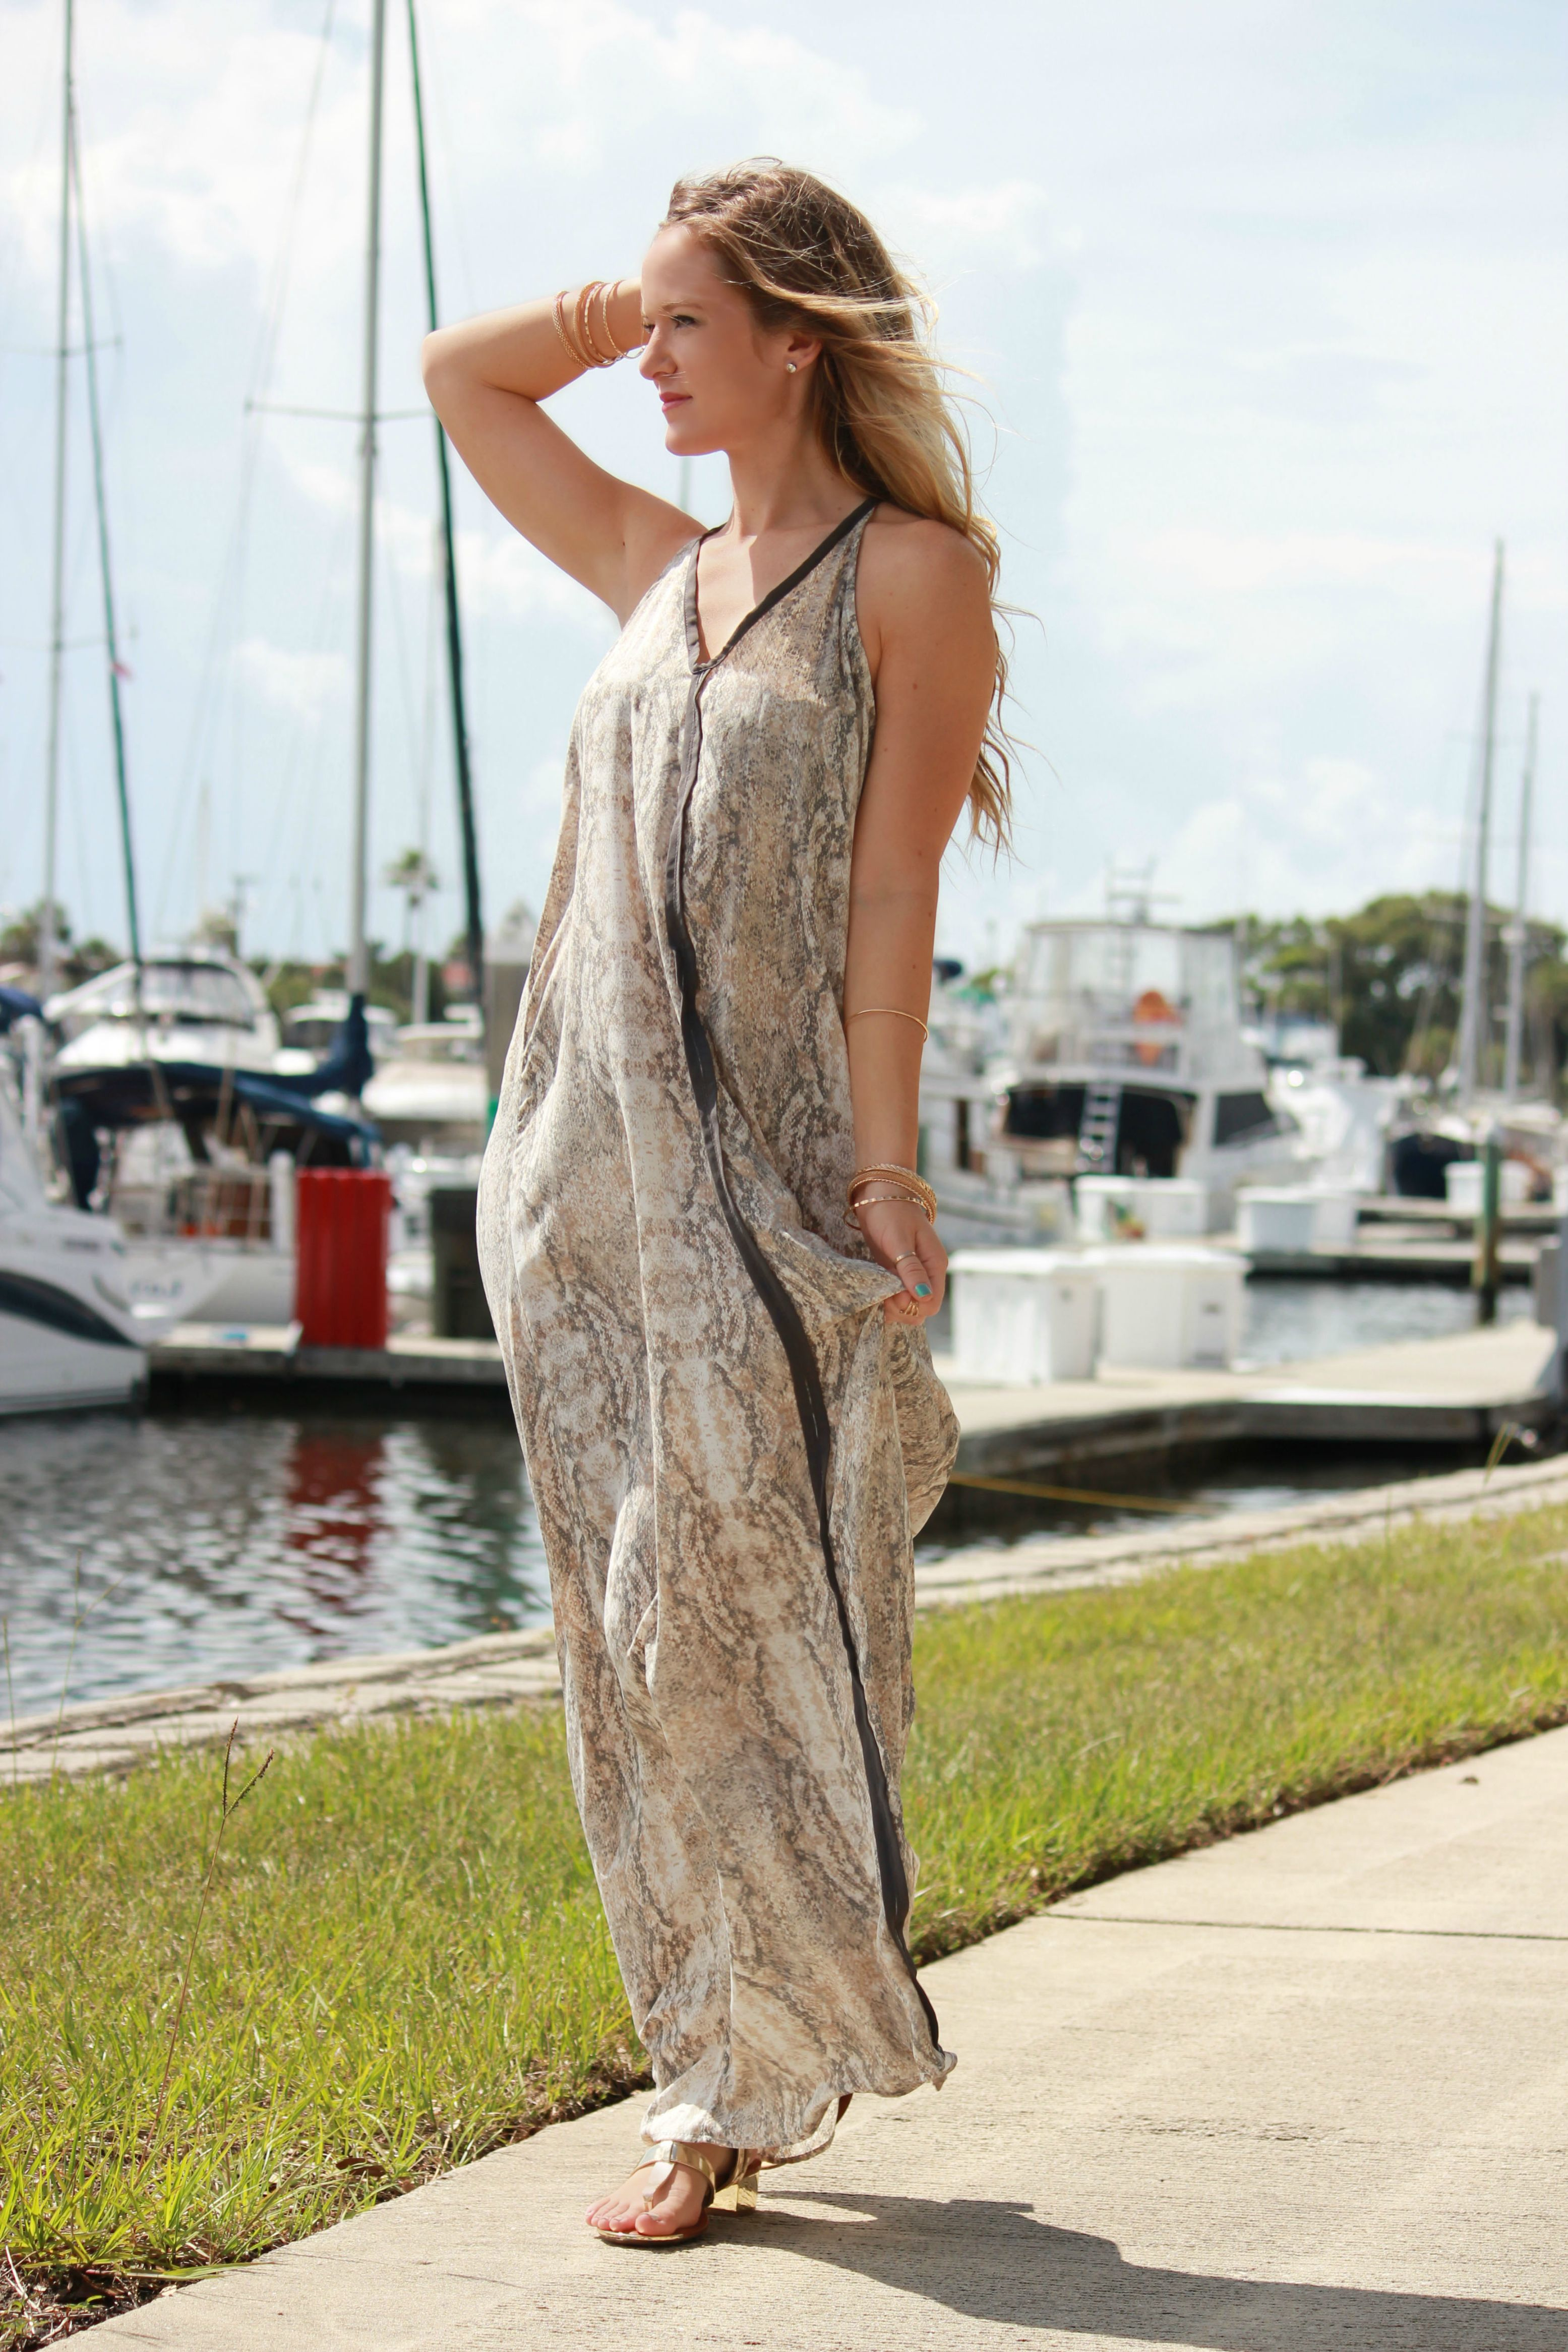 blush boutique maxi, gianni bini sandals, summer outfit, python maxi dress, casual outfit